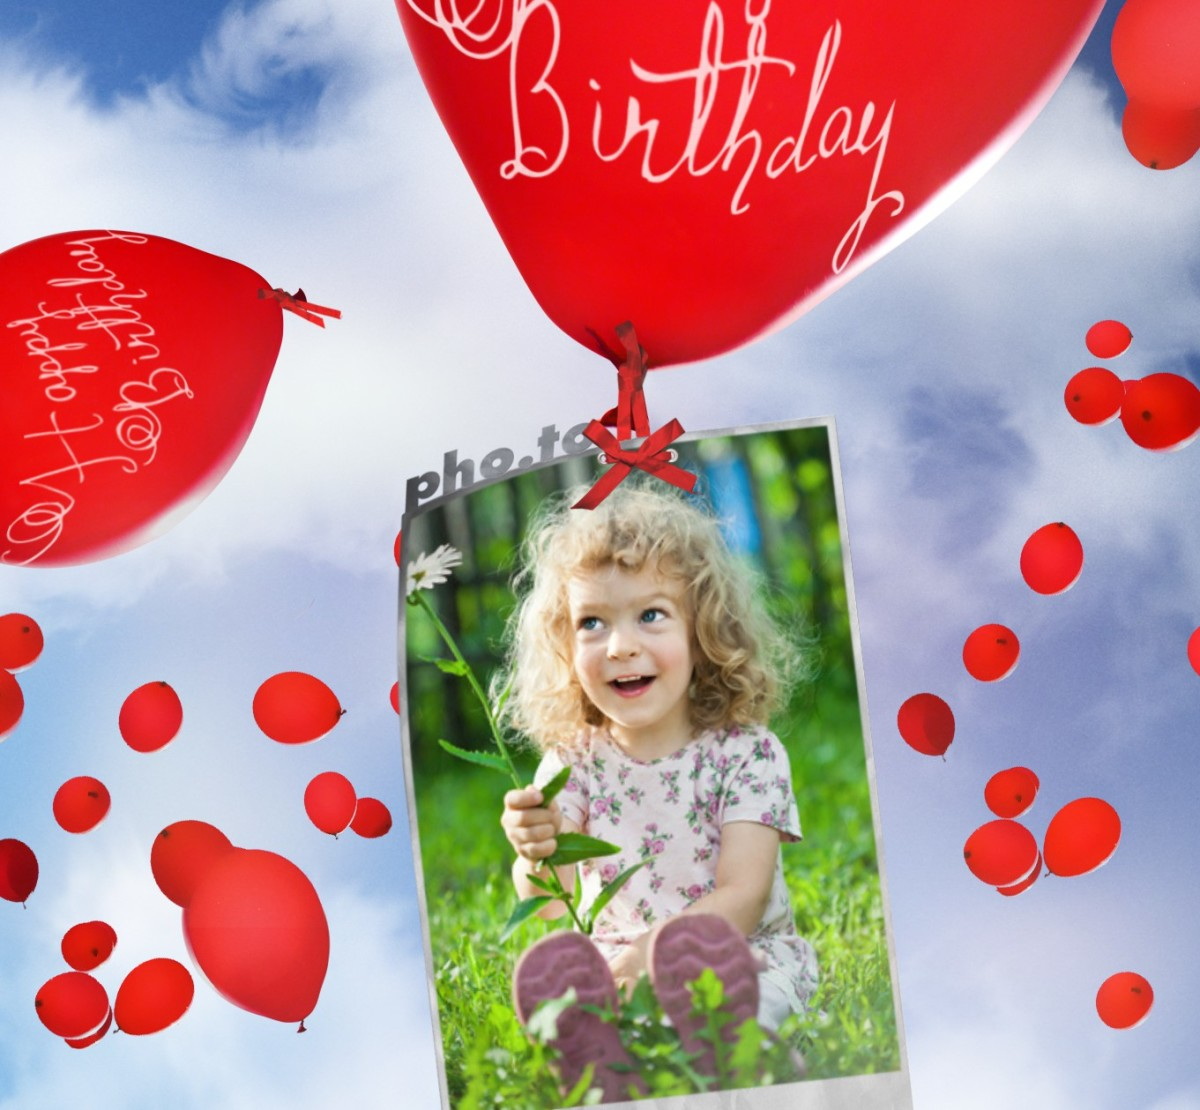 birthday wishes with photo effects ; birthday_ecard_with_balloons